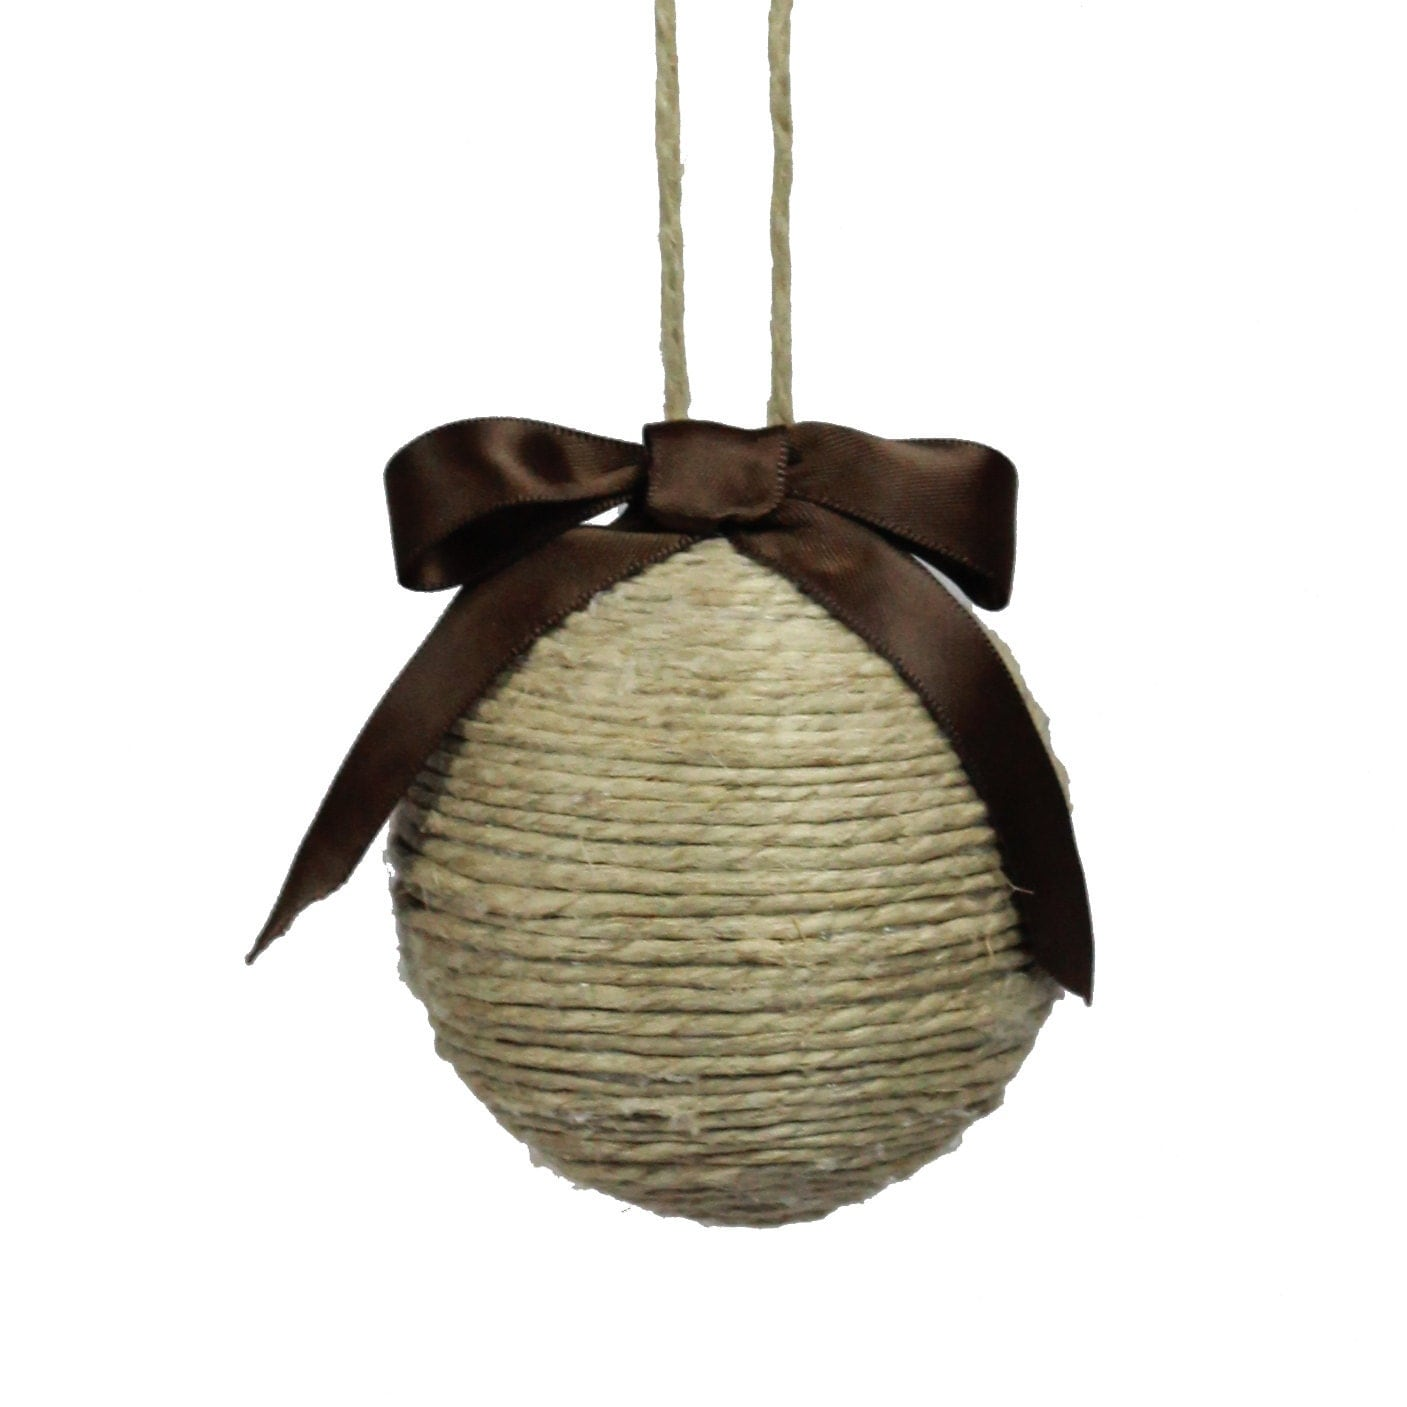 Jute String Ornament Christmas Rustic Wedding Unique Christmas Decor - FoundationCreations